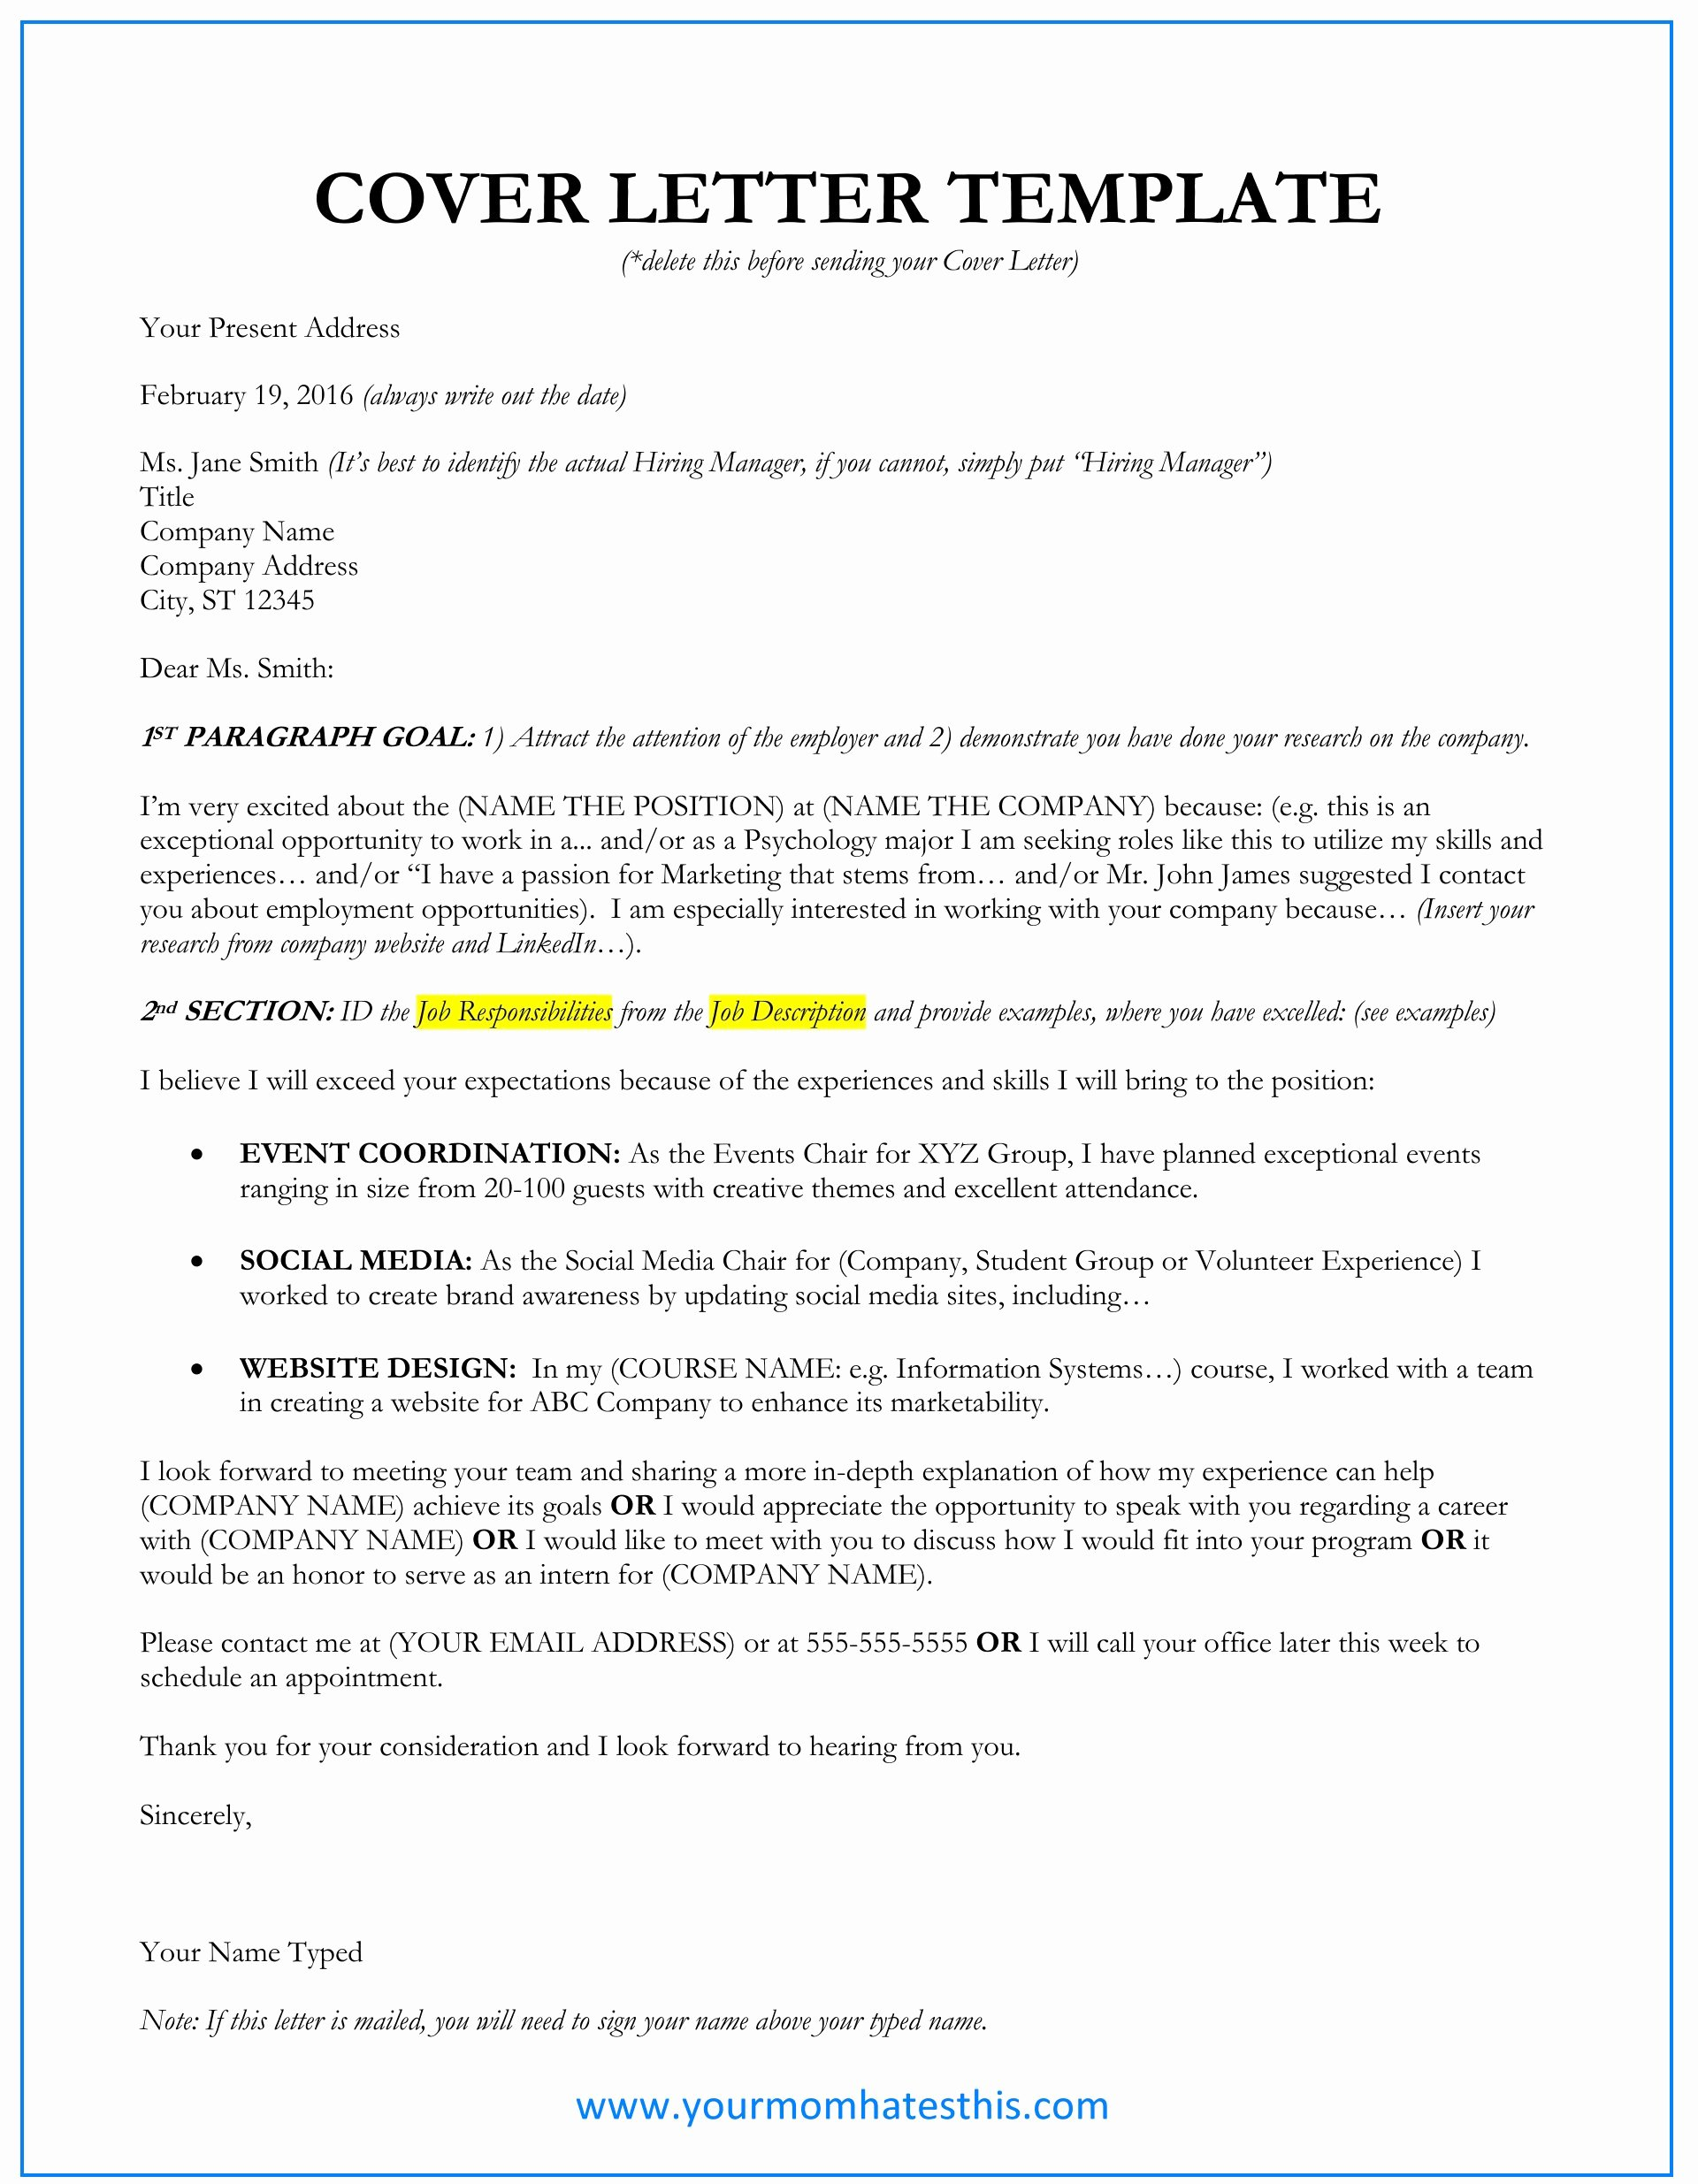 Cover Letter Examples Luxury Cover Letter Samples Download Free Cover Letter Templates